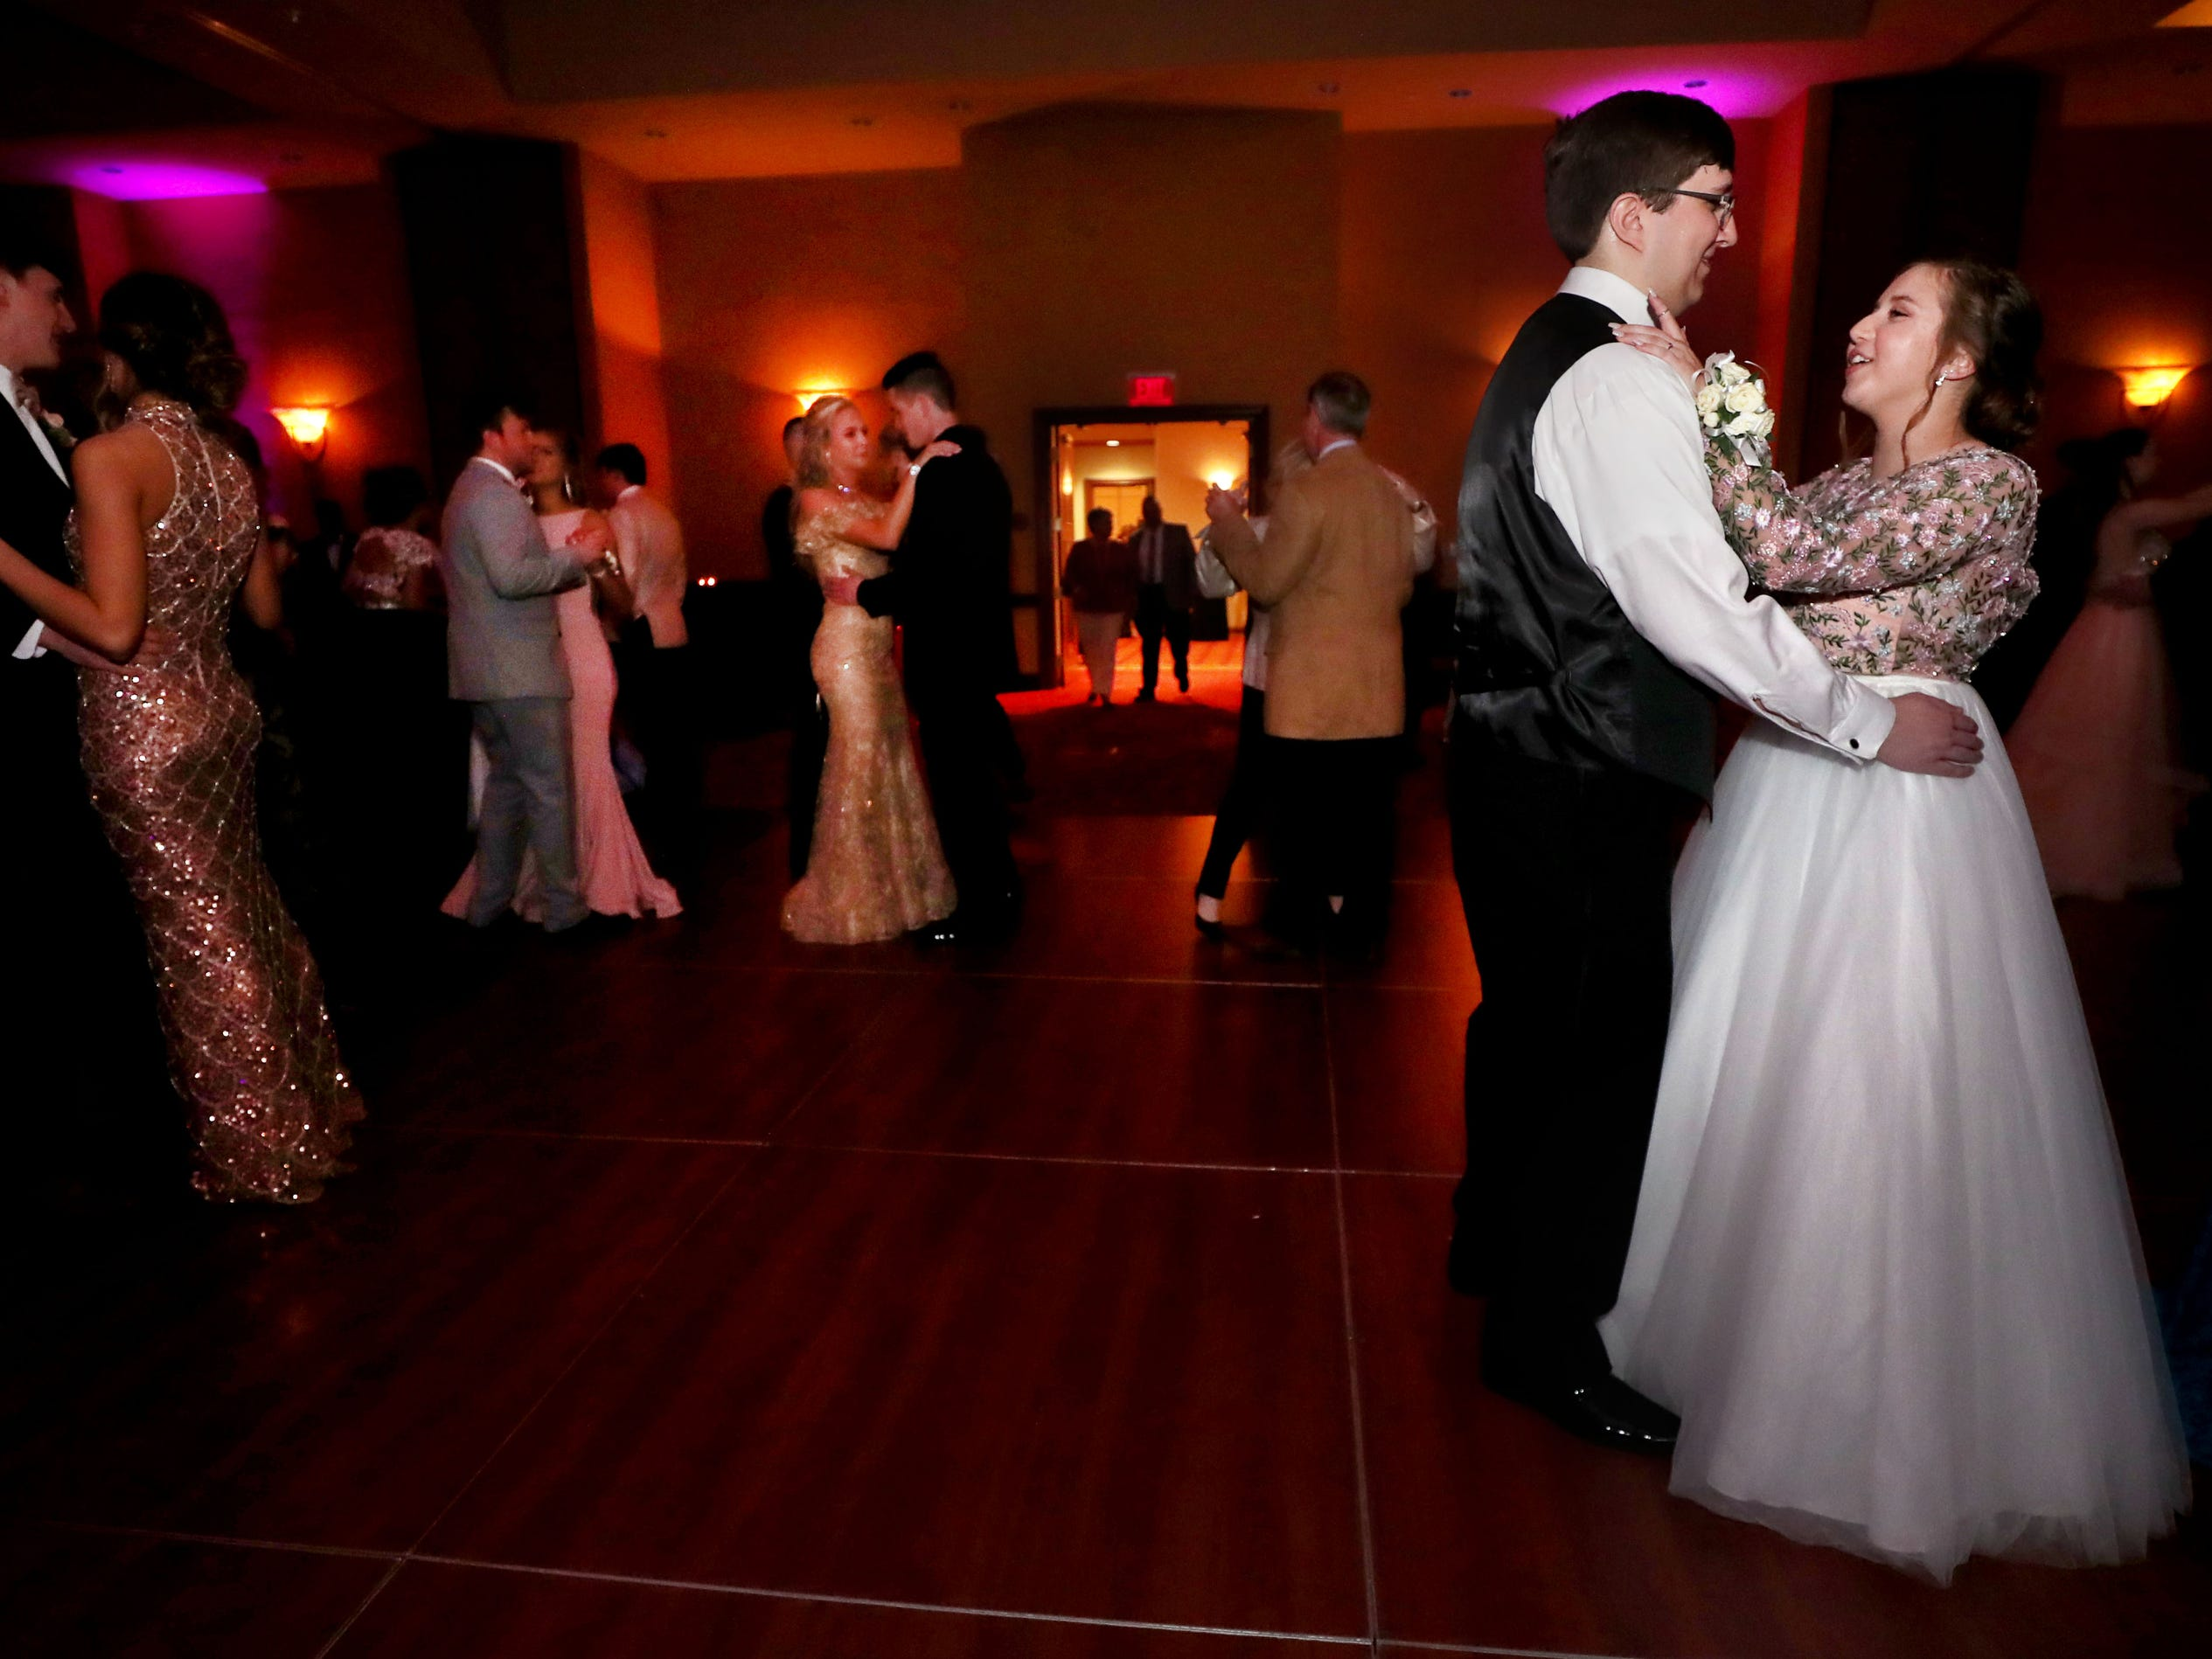 """Nicholas Johnson, left  and Daisy Hall, right dance to """"At Last"""" at Eagleville's Prom held at Embassy Suites, in Murfreesboro on Thursday April 5, 2019."""